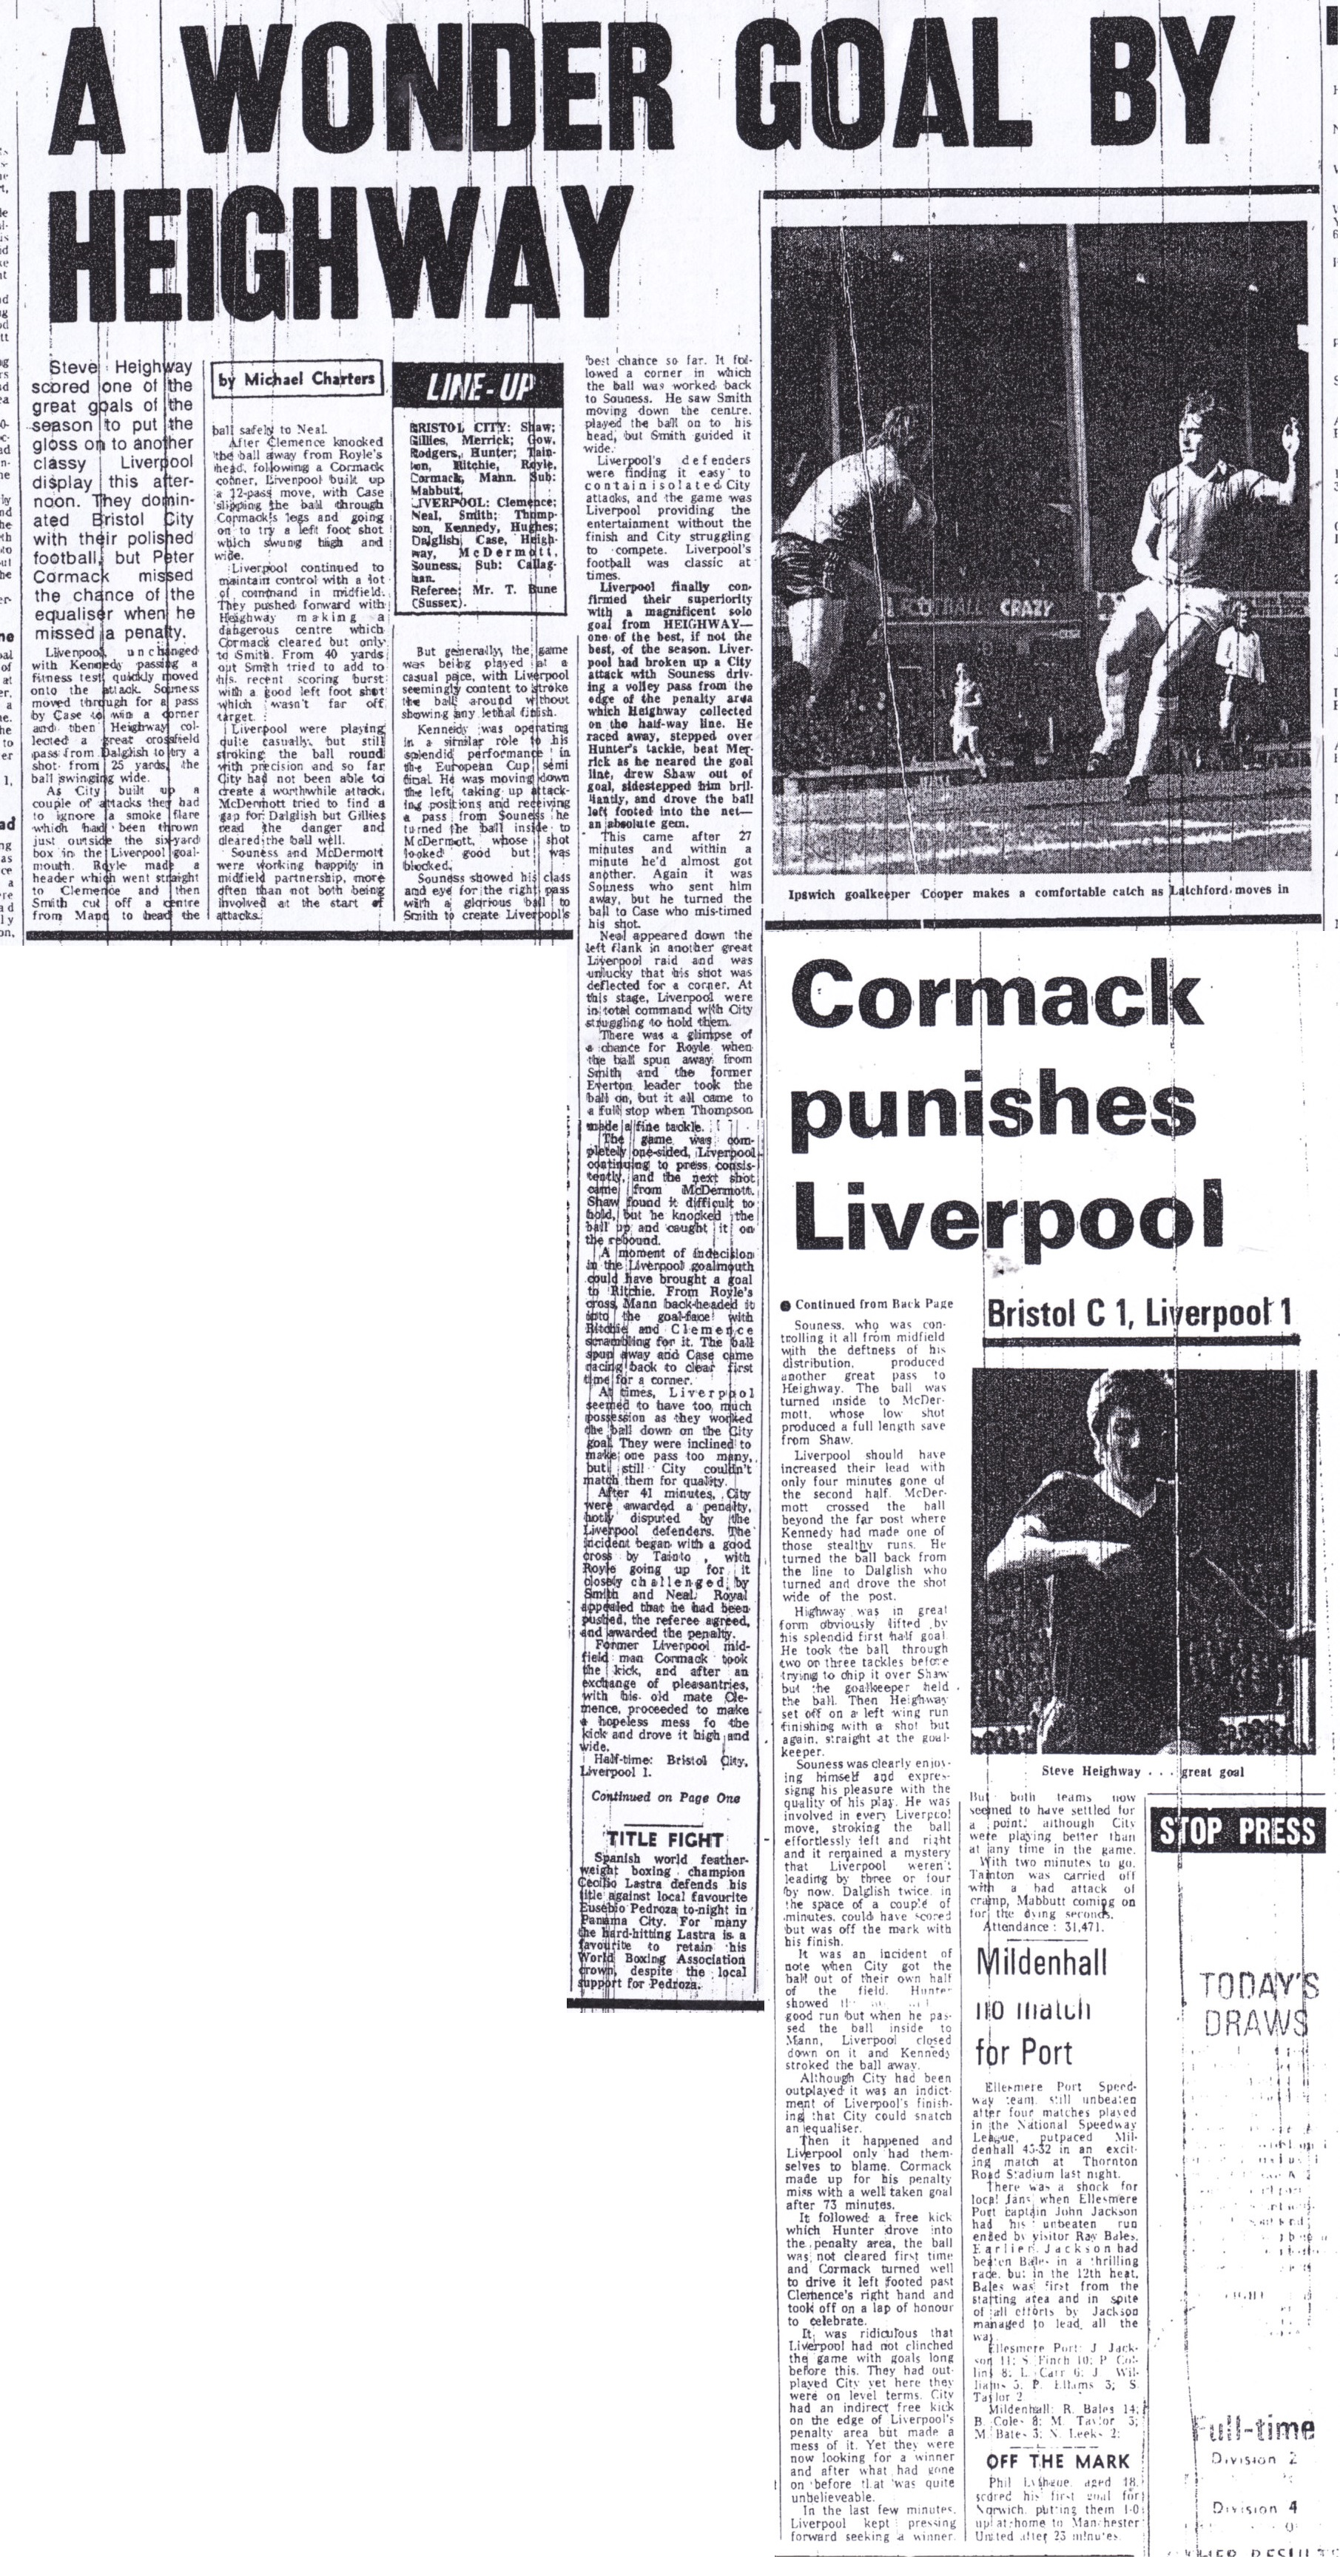 Cormack punishes Liverpool! - 15 April 1978